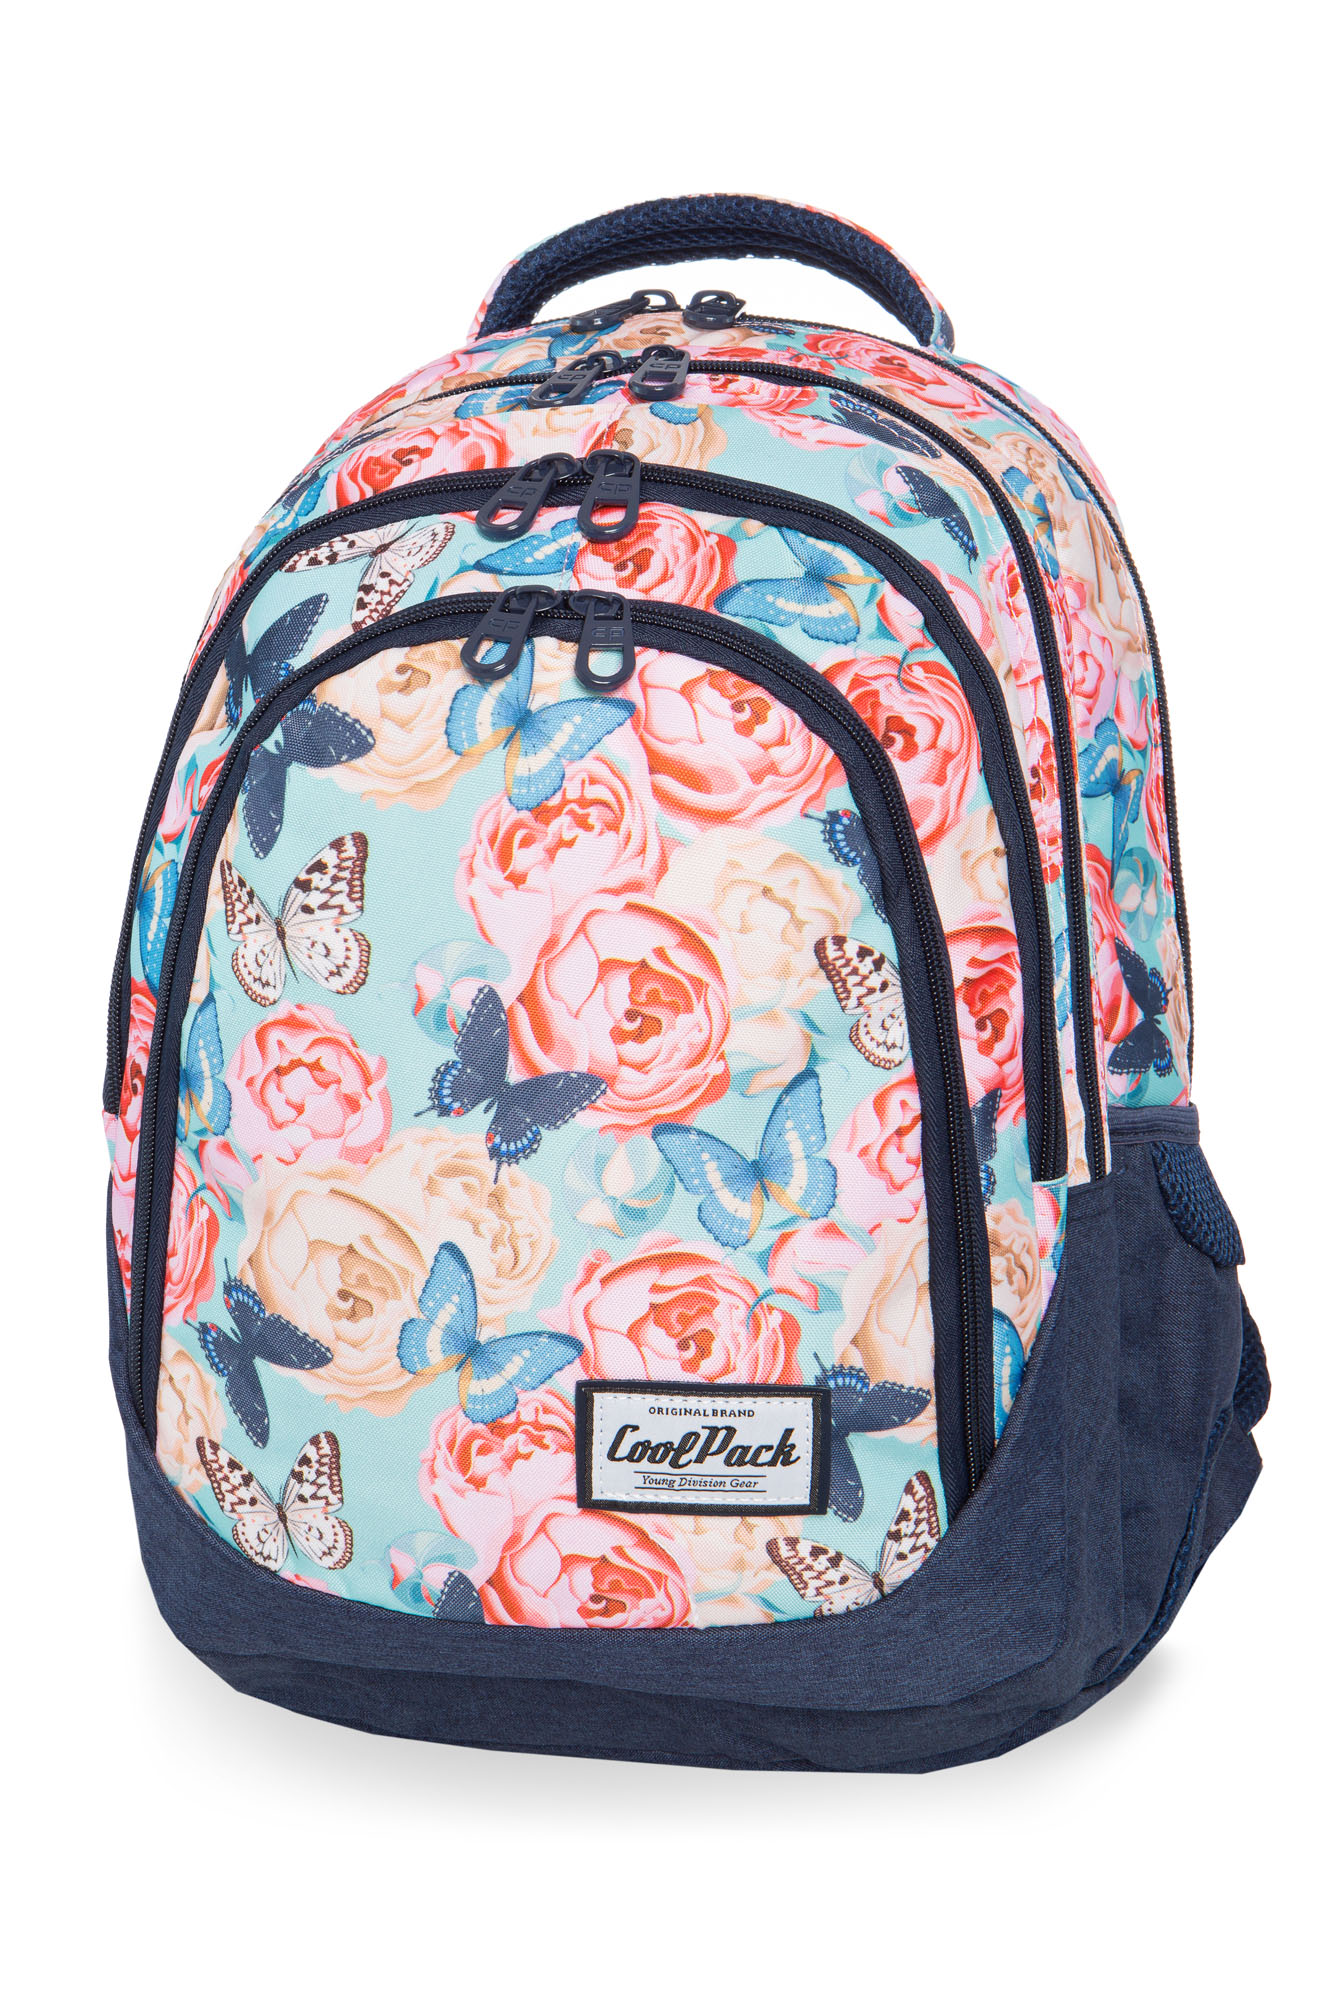 Coolpack - drafter - youth backpack - butterflies